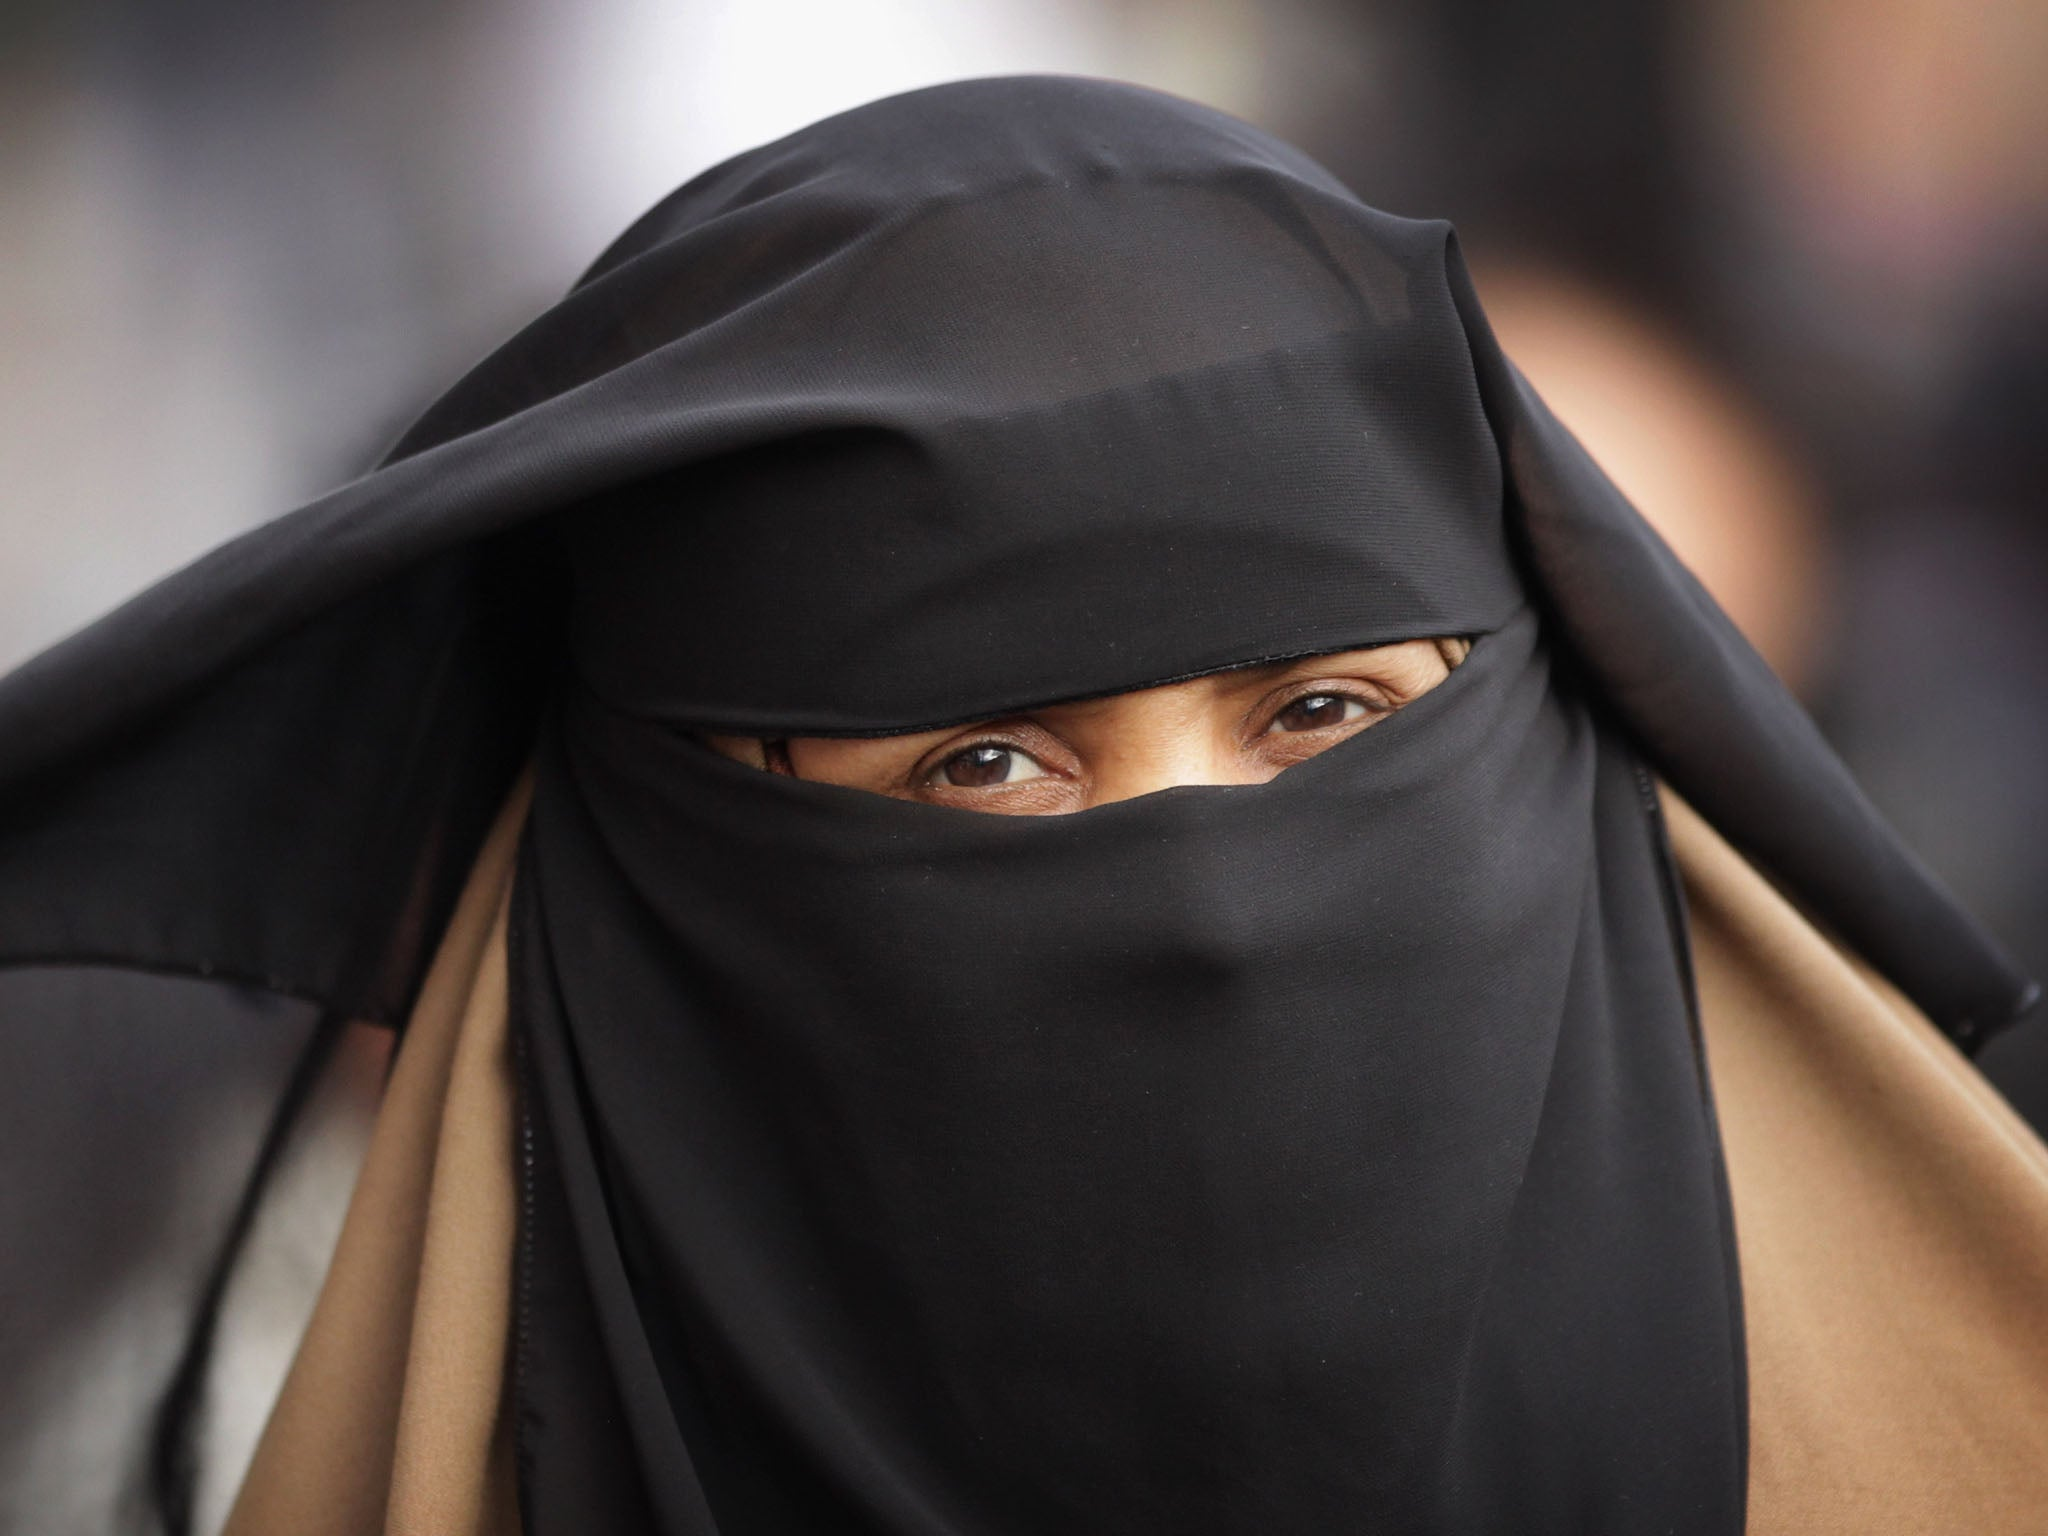 Netherlands approves limited ban on 'face covering clothing' like niqabs and burqas